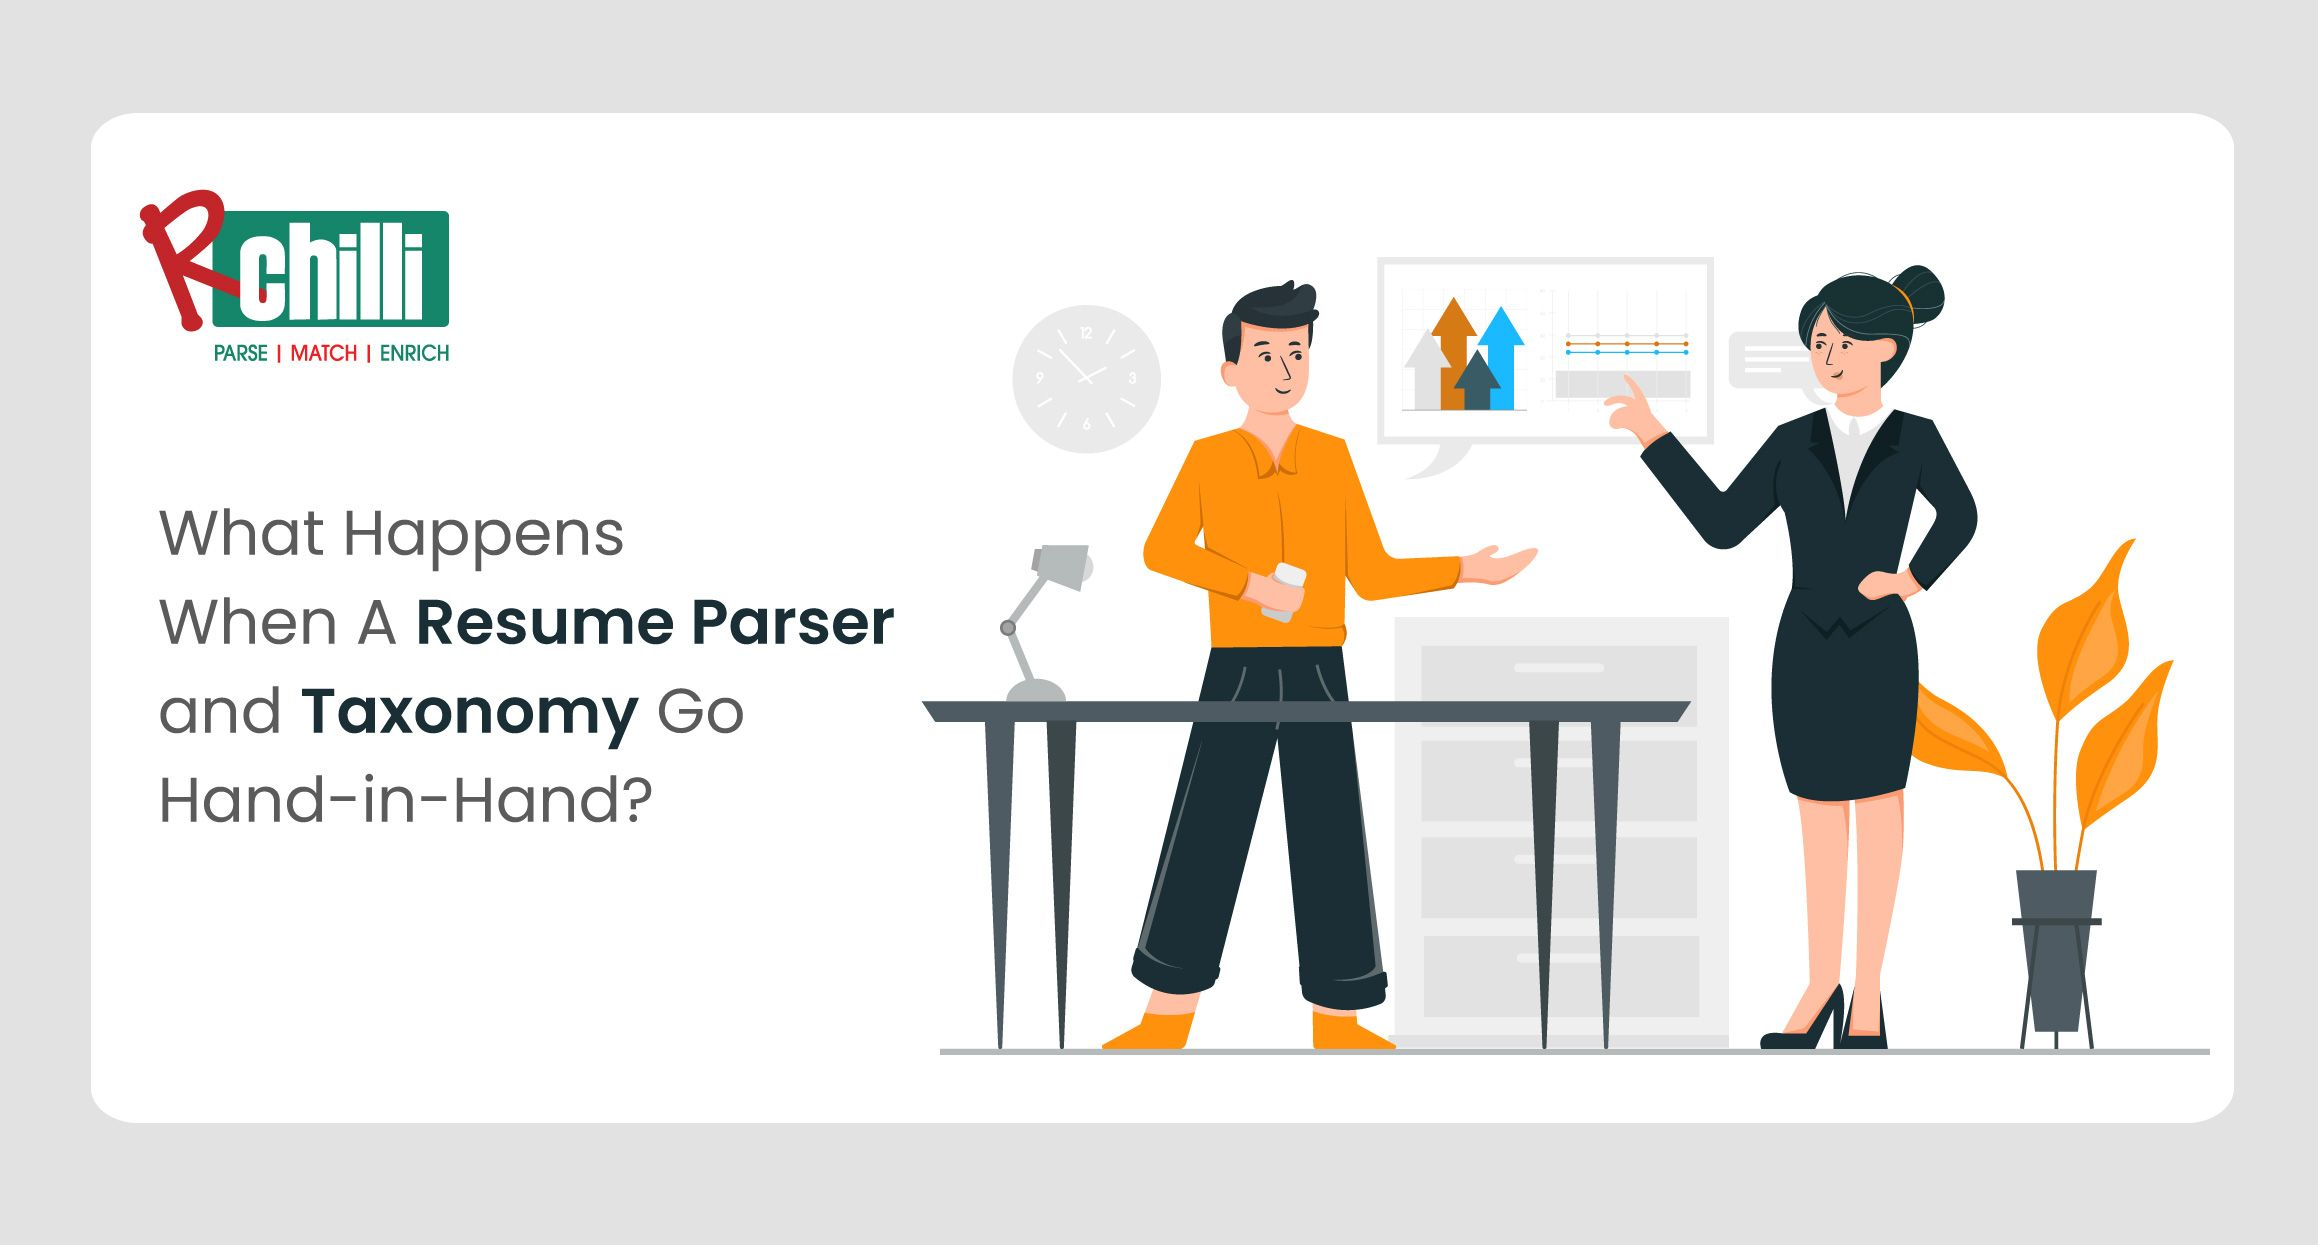 How Does a Resume Parser Become More Powerful with Taxonomy?